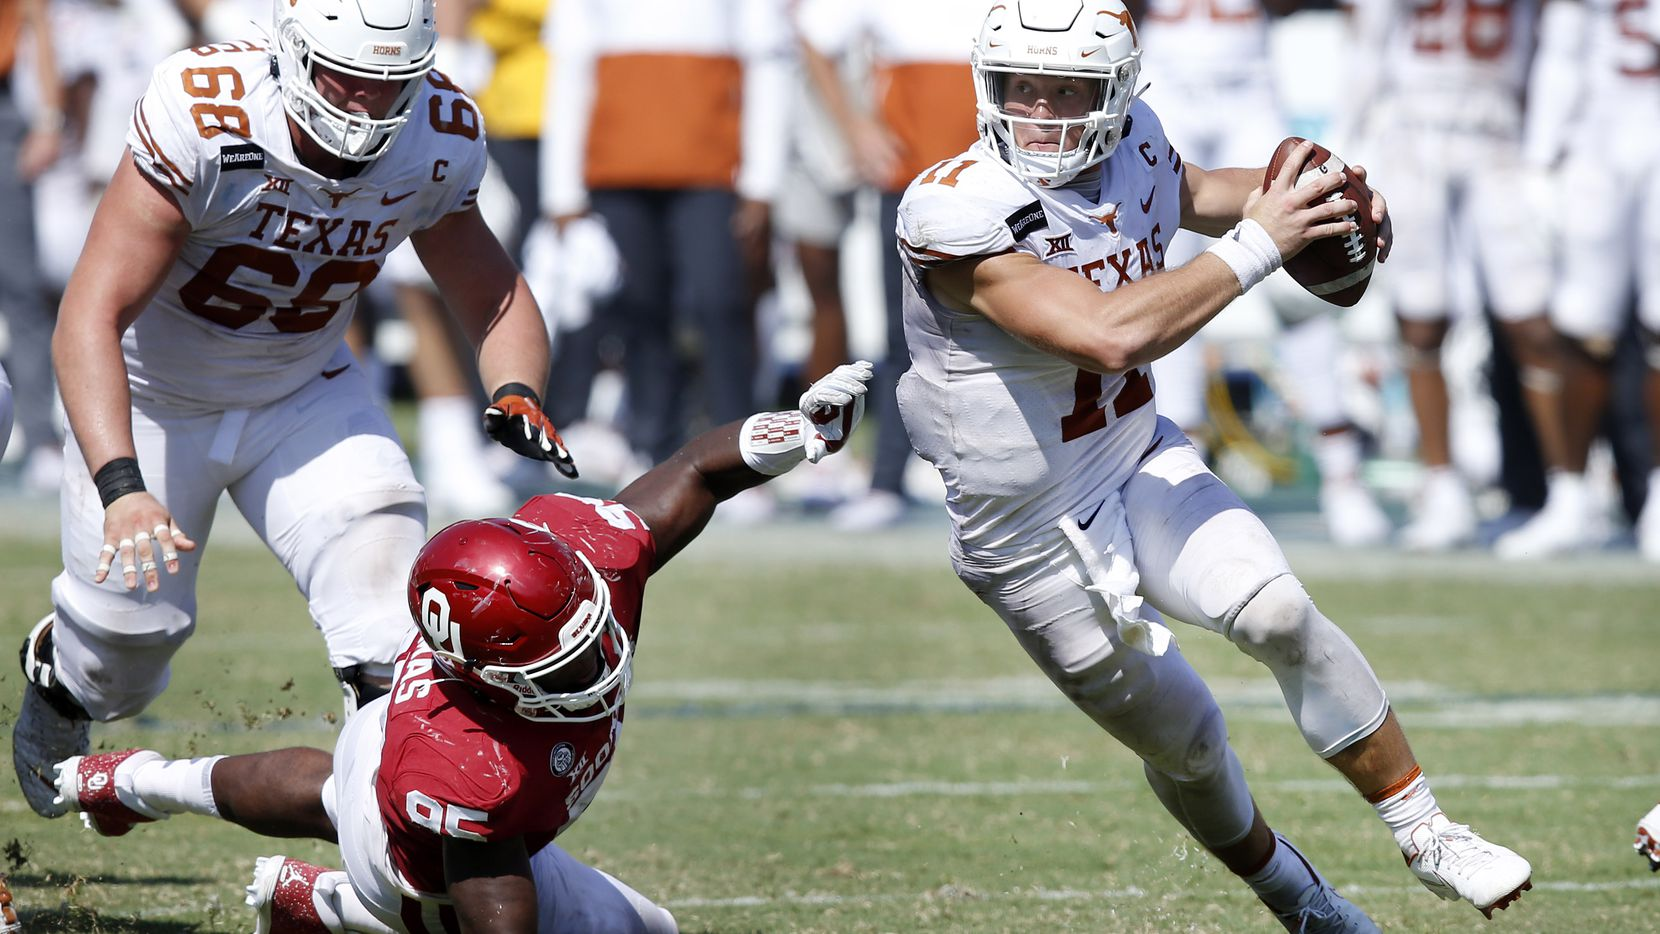 Texas Longhorns quarterback Sam Ehlinger (11) spins away from Oklahoma Sooners defensive lineman Isaiah Thomas (95) during the fourth quarter of the Red River Rivalry at the Cotton Bowl in Dallas, Saturday, October 10, 2020.